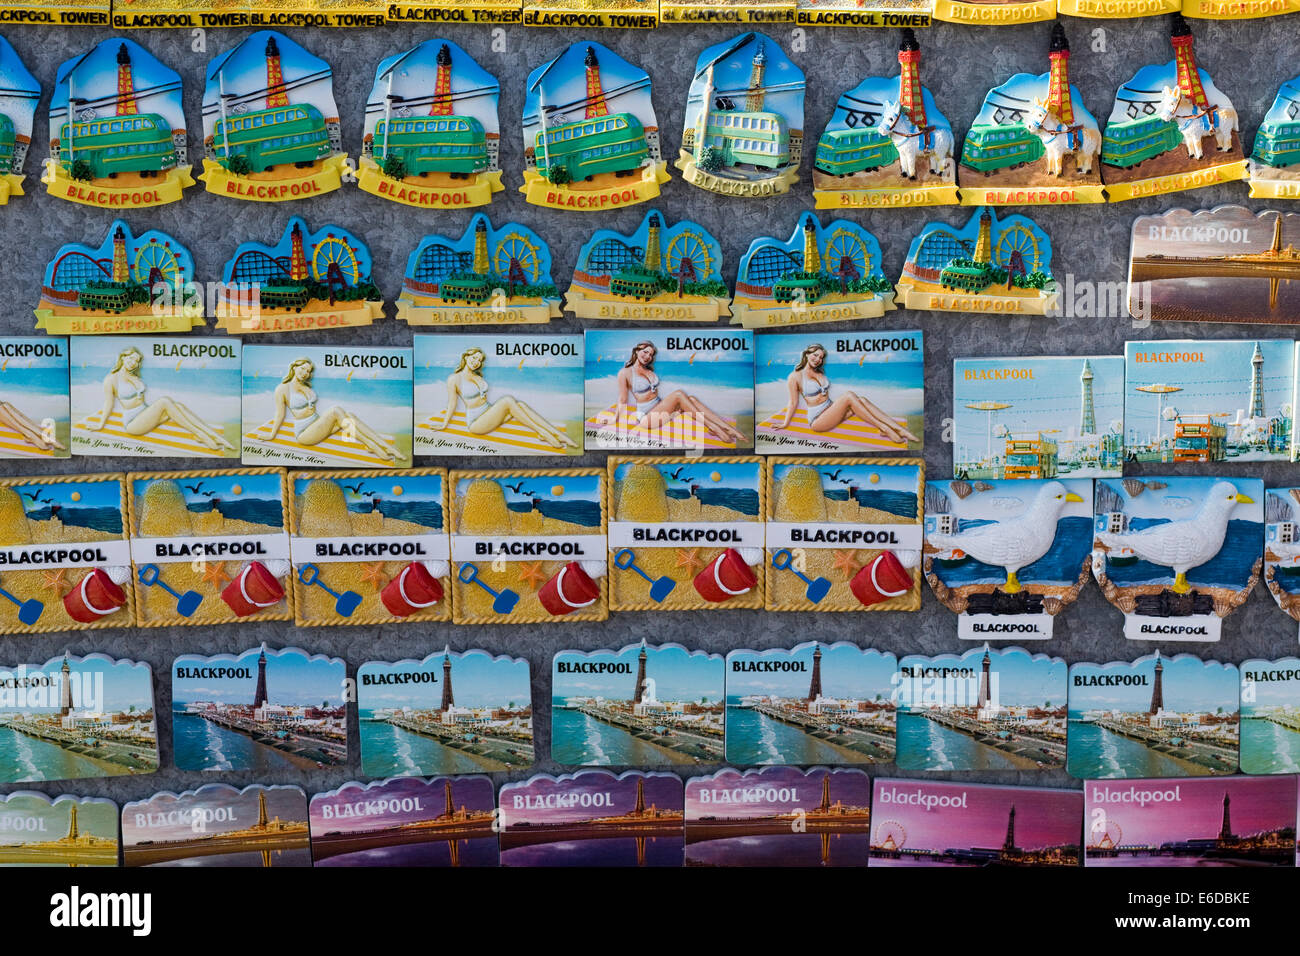 Fridge magnets along the Seafront at Blackpool Lancashire UK - Stock Image